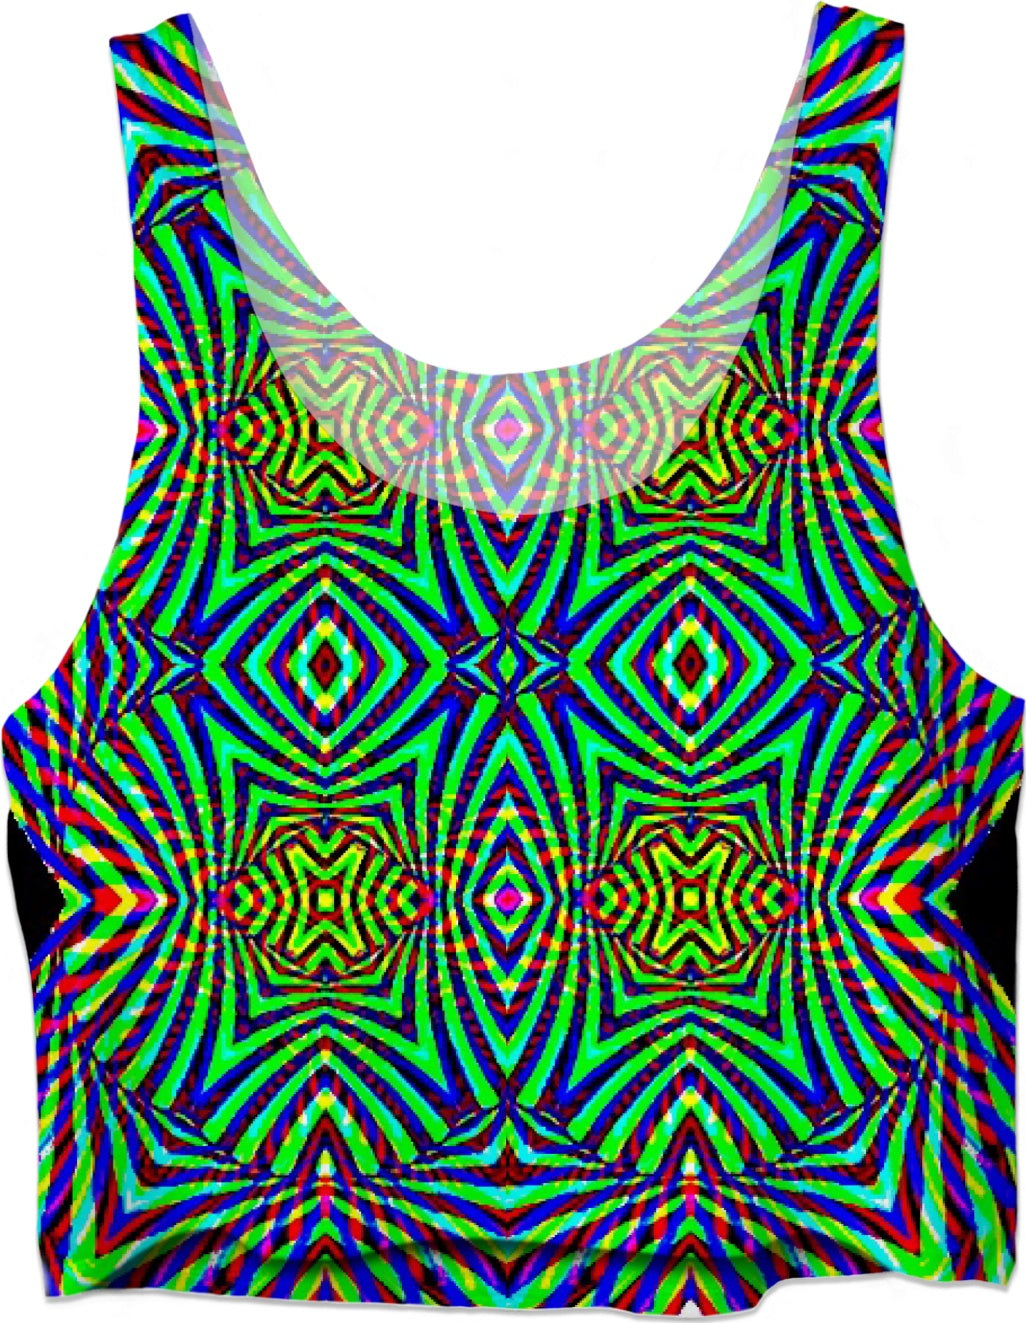 Cosmic Rainbow Aura - Luxe Design Crop Top